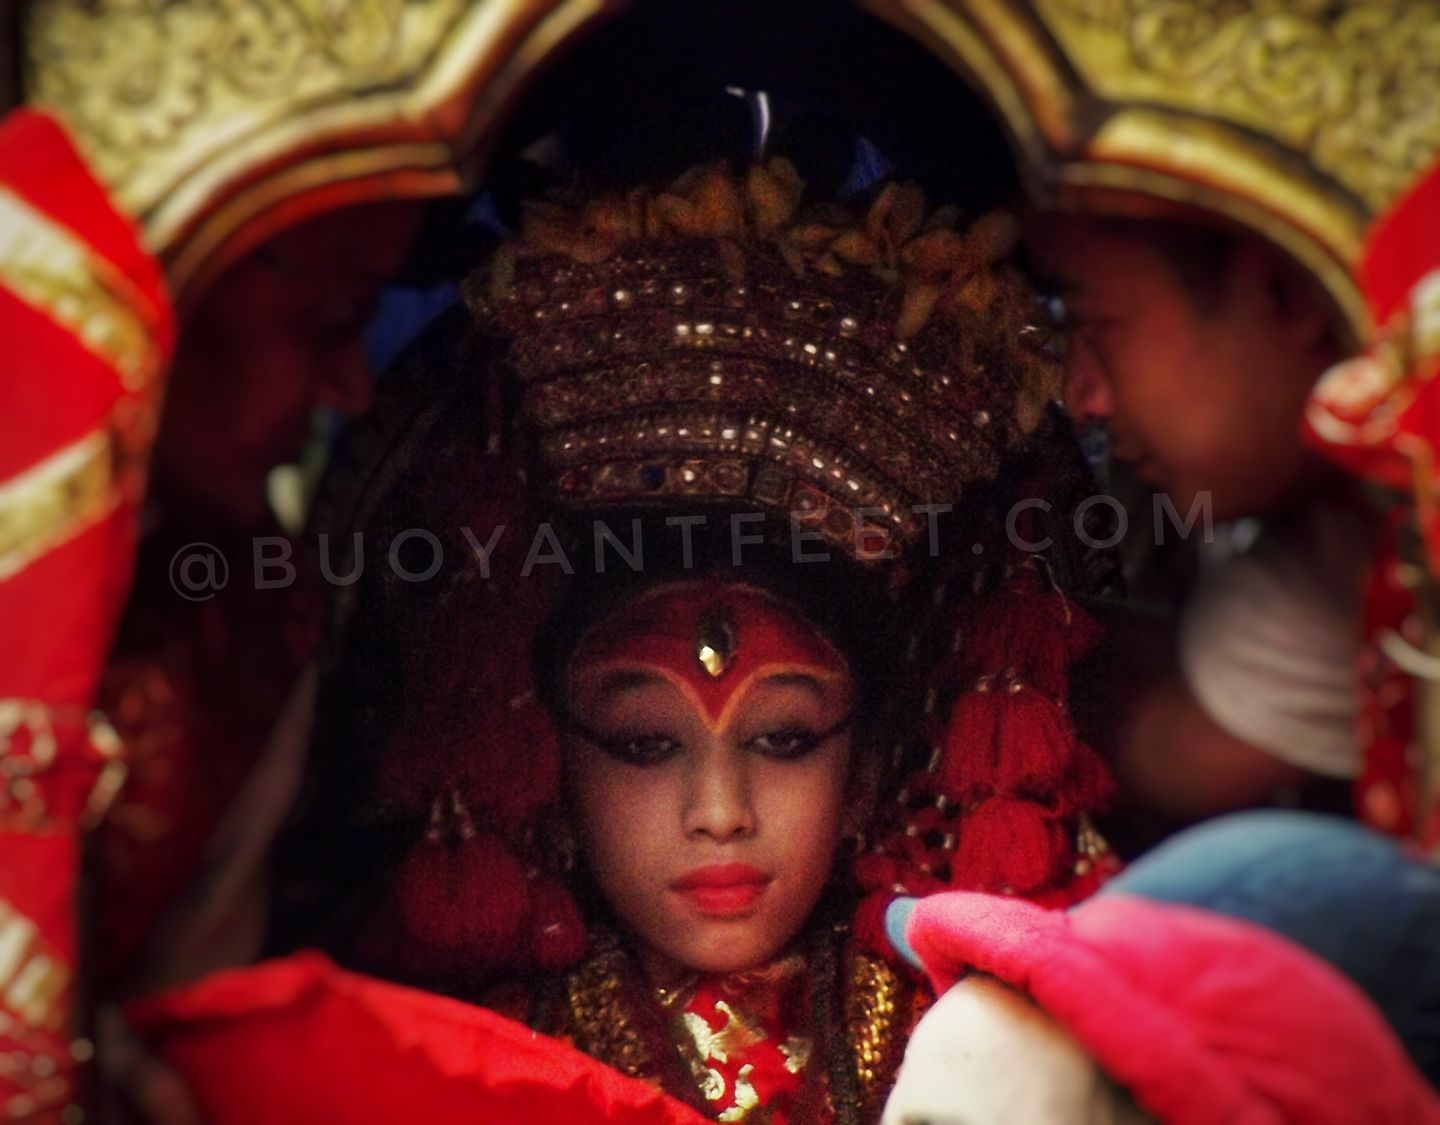 Then Kumari Goddess of Nepal during the chariot Jatra